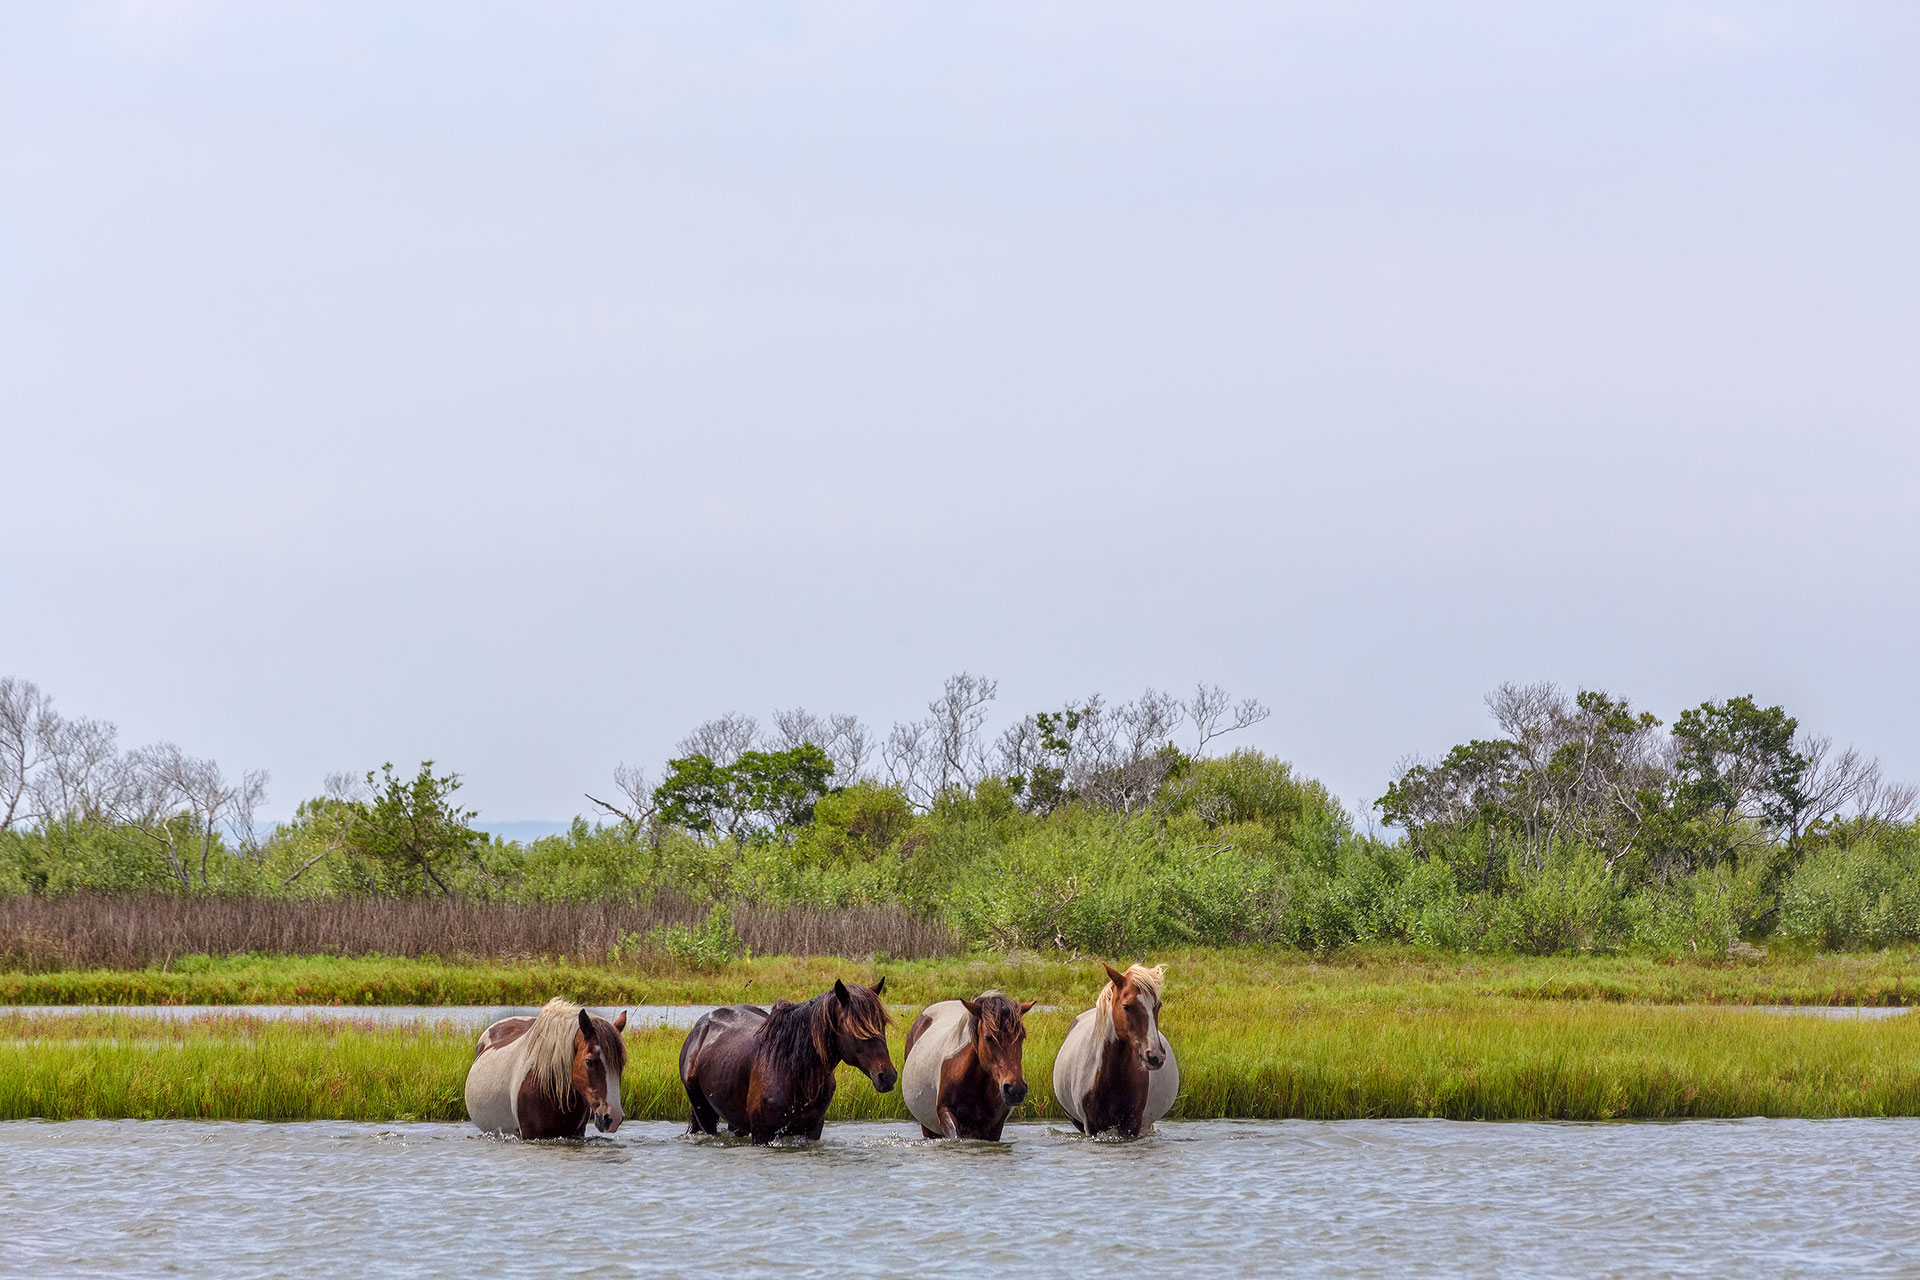 Wild Ponies in Chincoteague Island; Courtesy of Stephen Bonk/Shutterstock.com